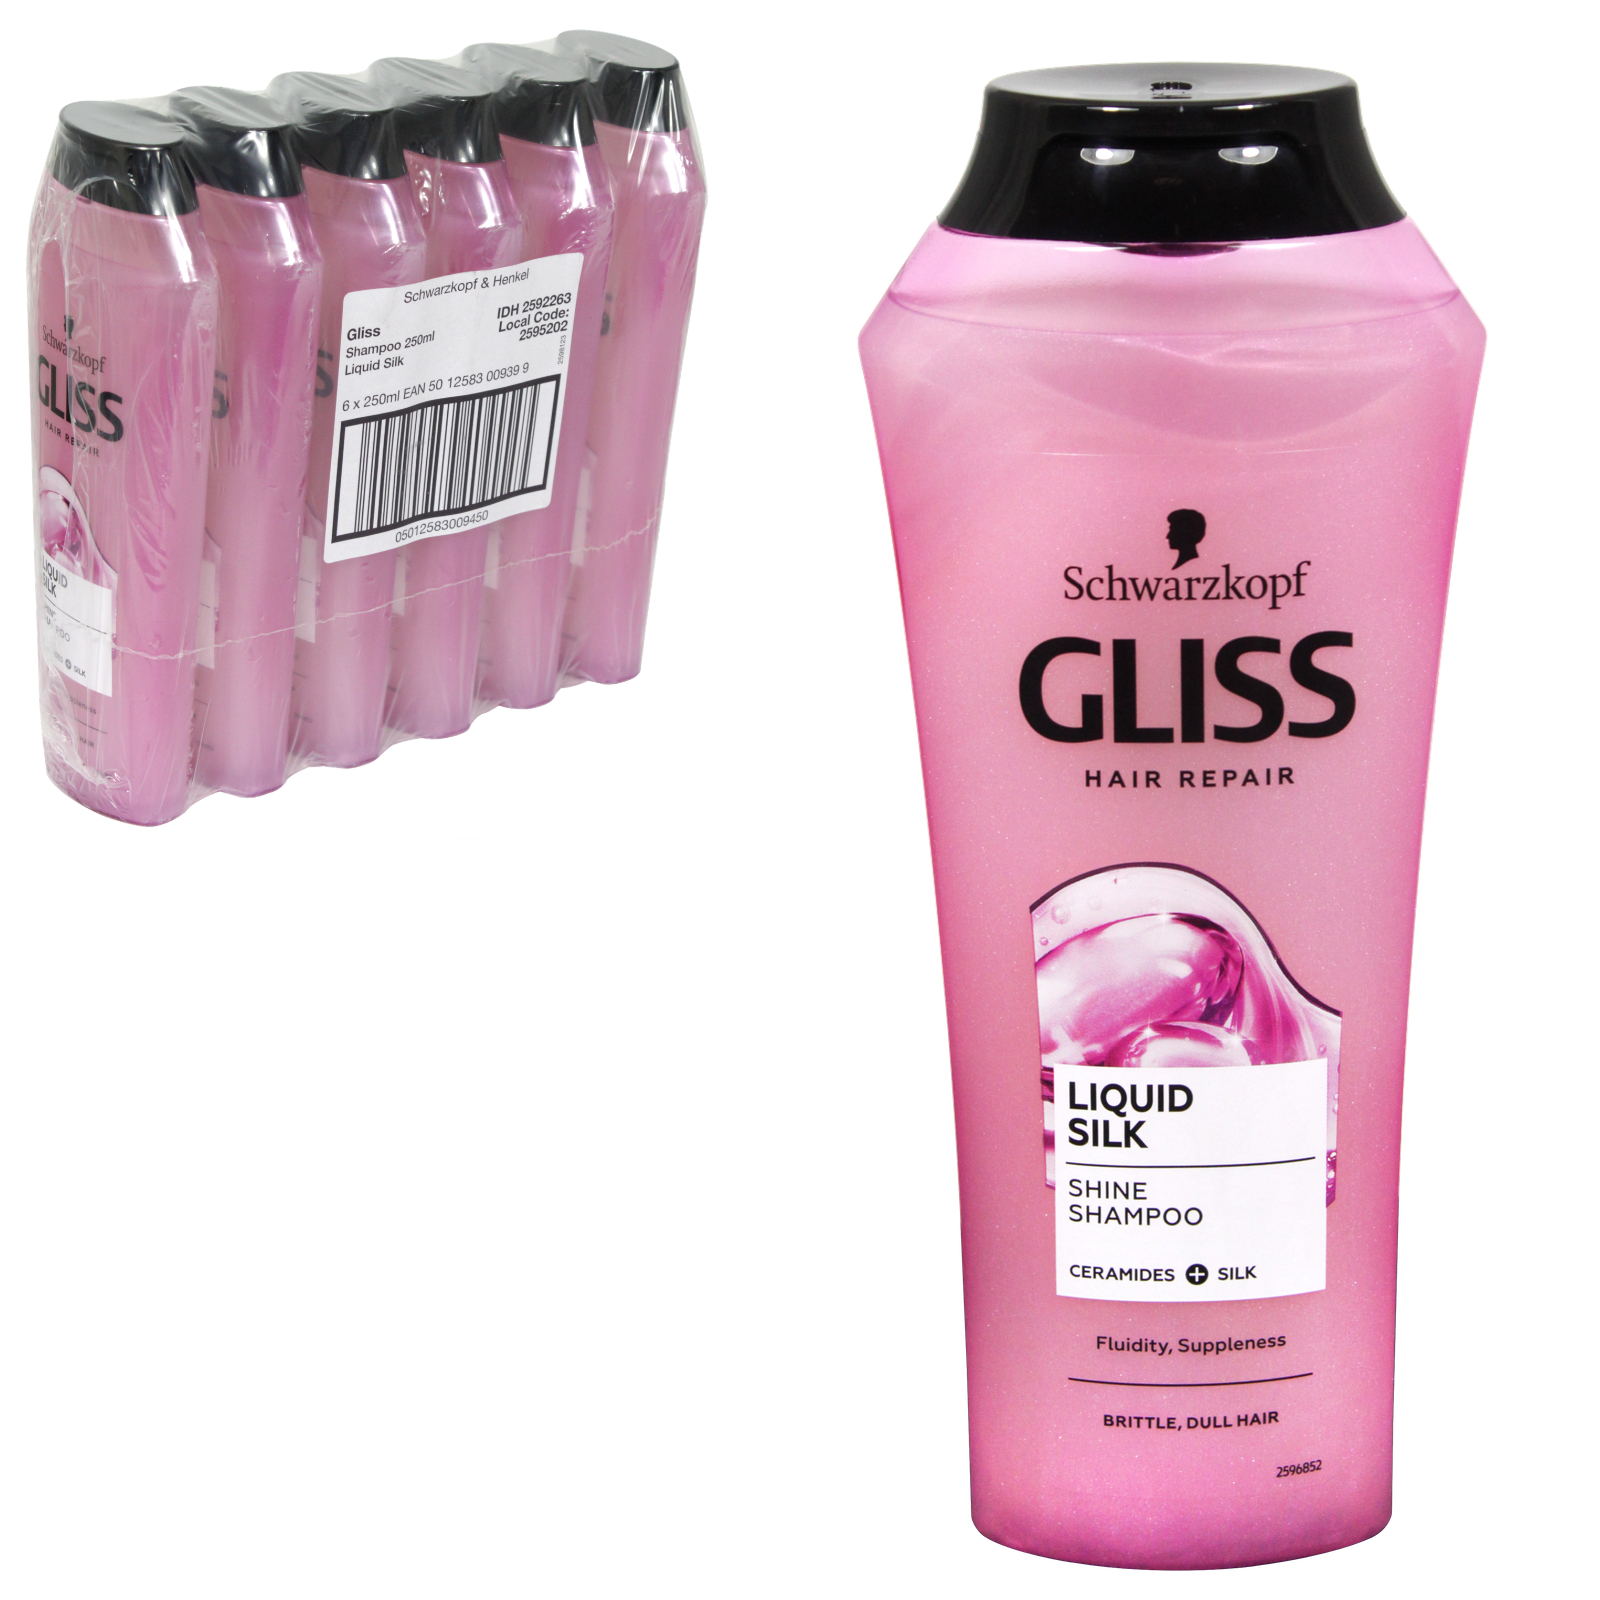 GLISS SHAMPOO 250ML LIQUID SILK X6